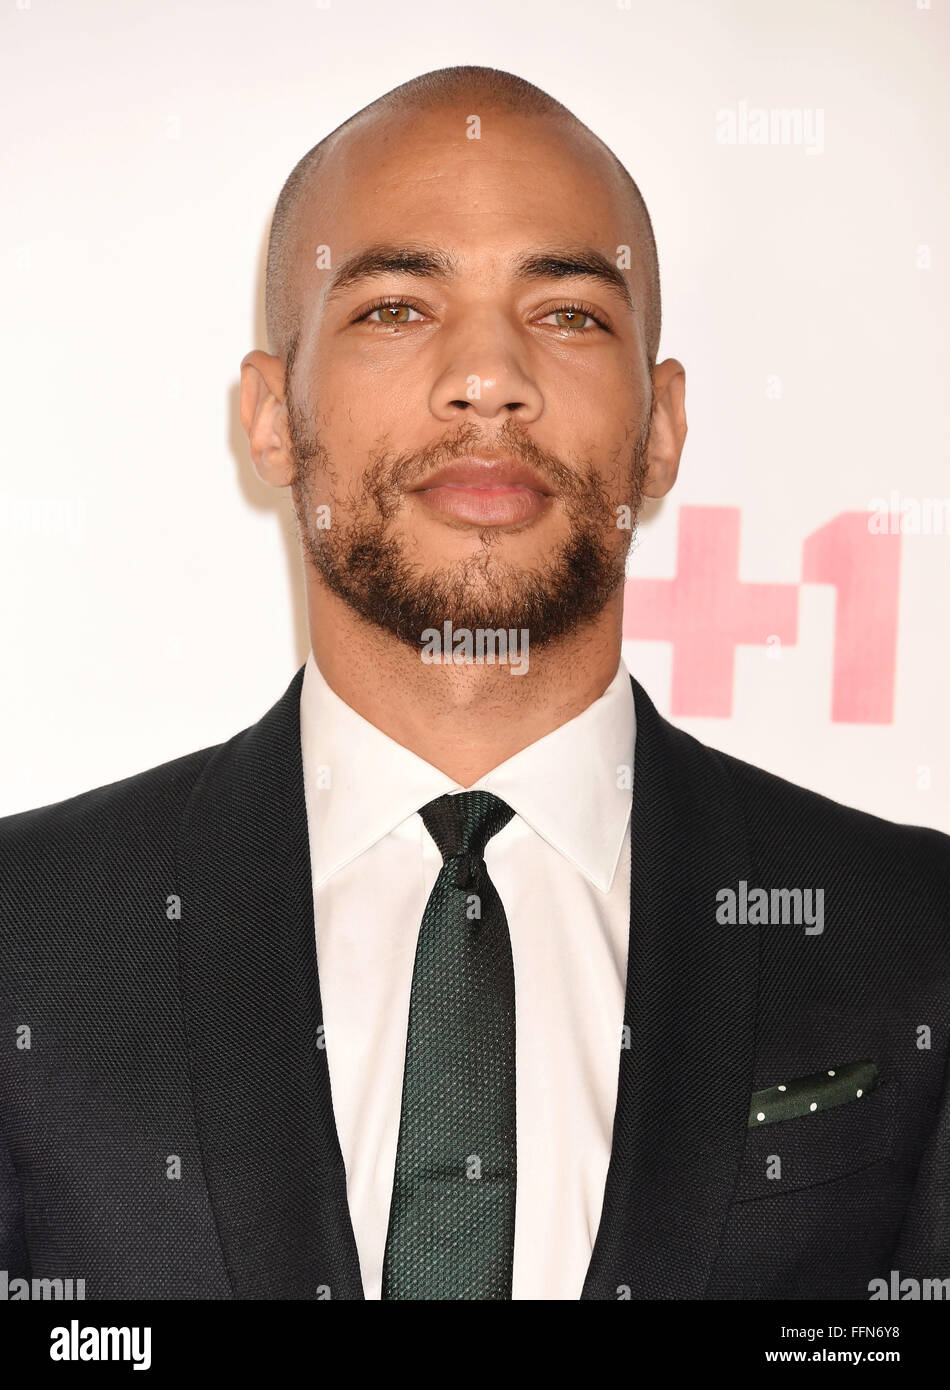 Actor Kendrick Sampson attends VH1 Big In 2015 With Entertainment Weekly Awards at Pacific Design Center on November - Stock Image